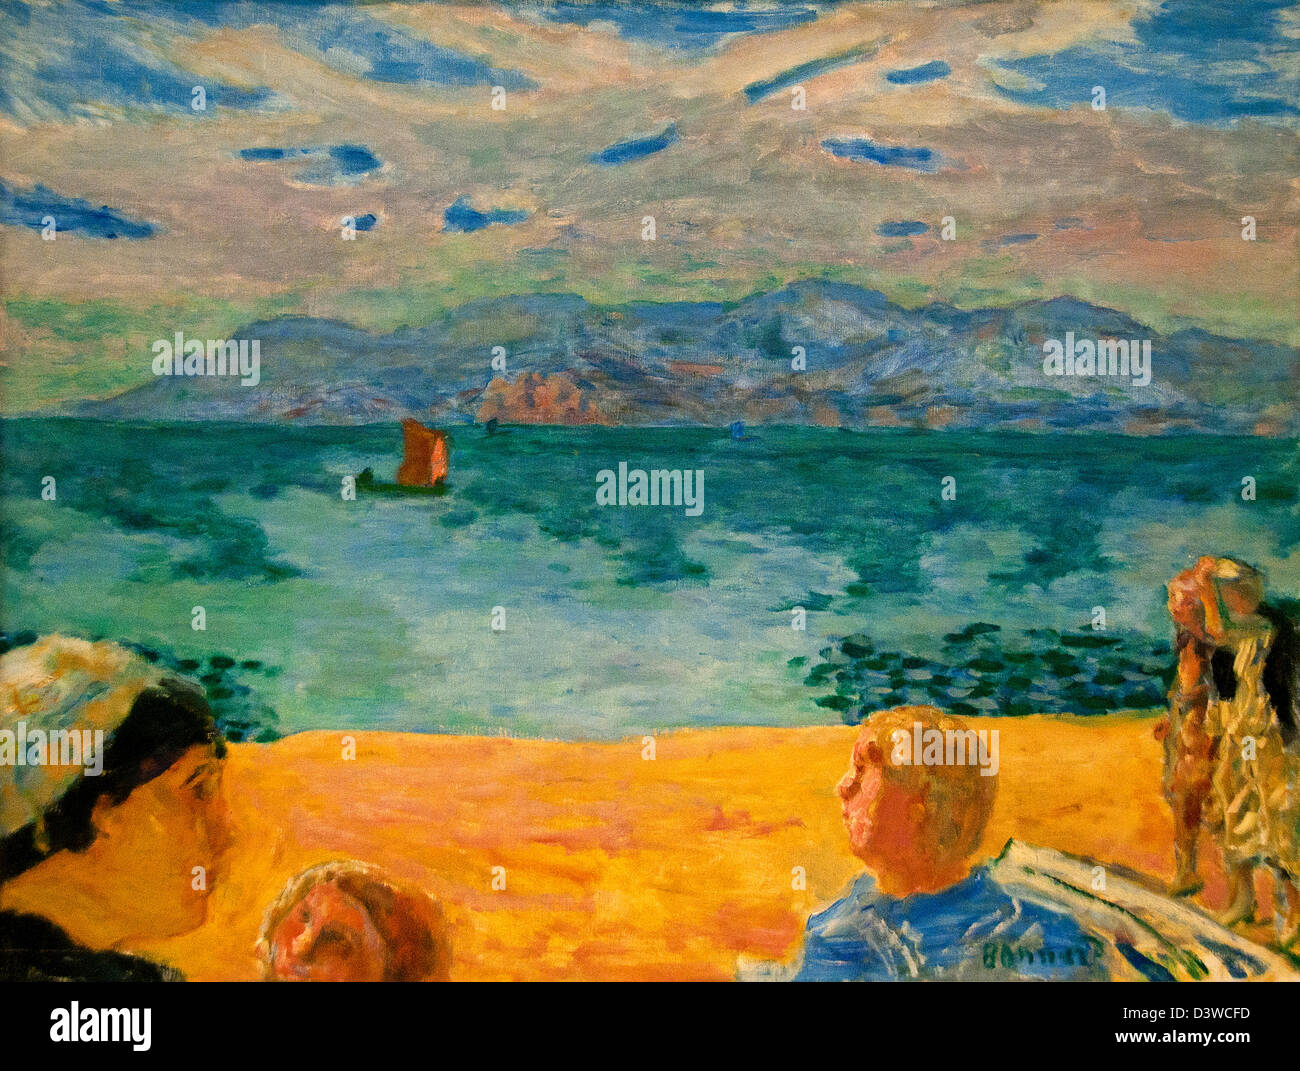 L Esterel 1917 Pierre Bonnard France French - Stock Image